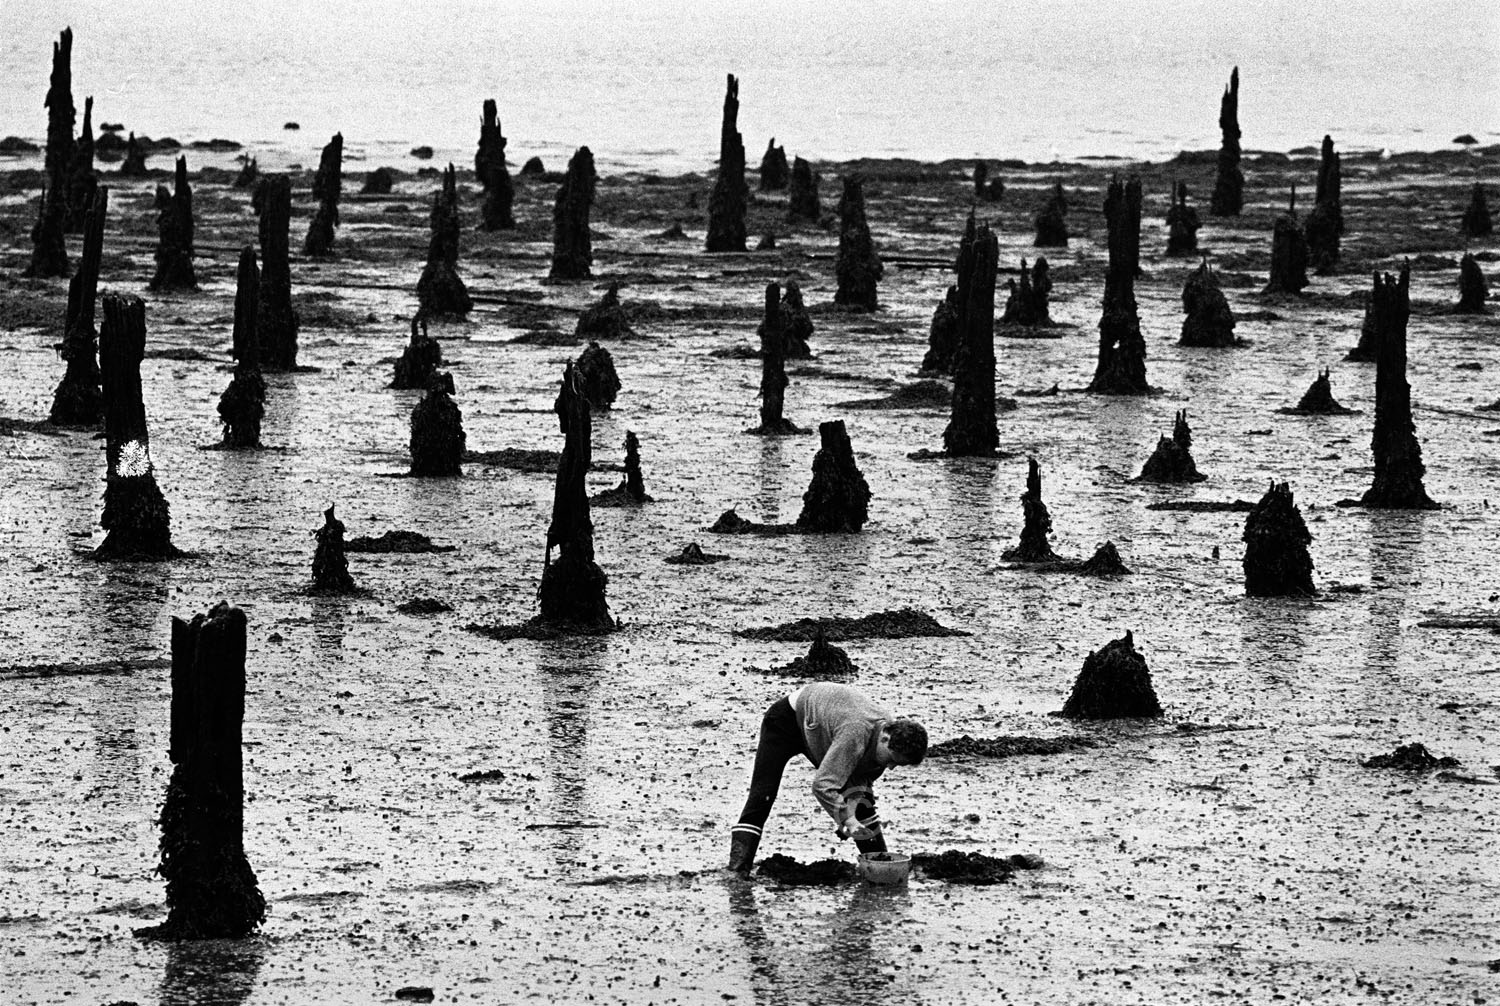 fisherman collects bait on Brittany beach. monochrome picture